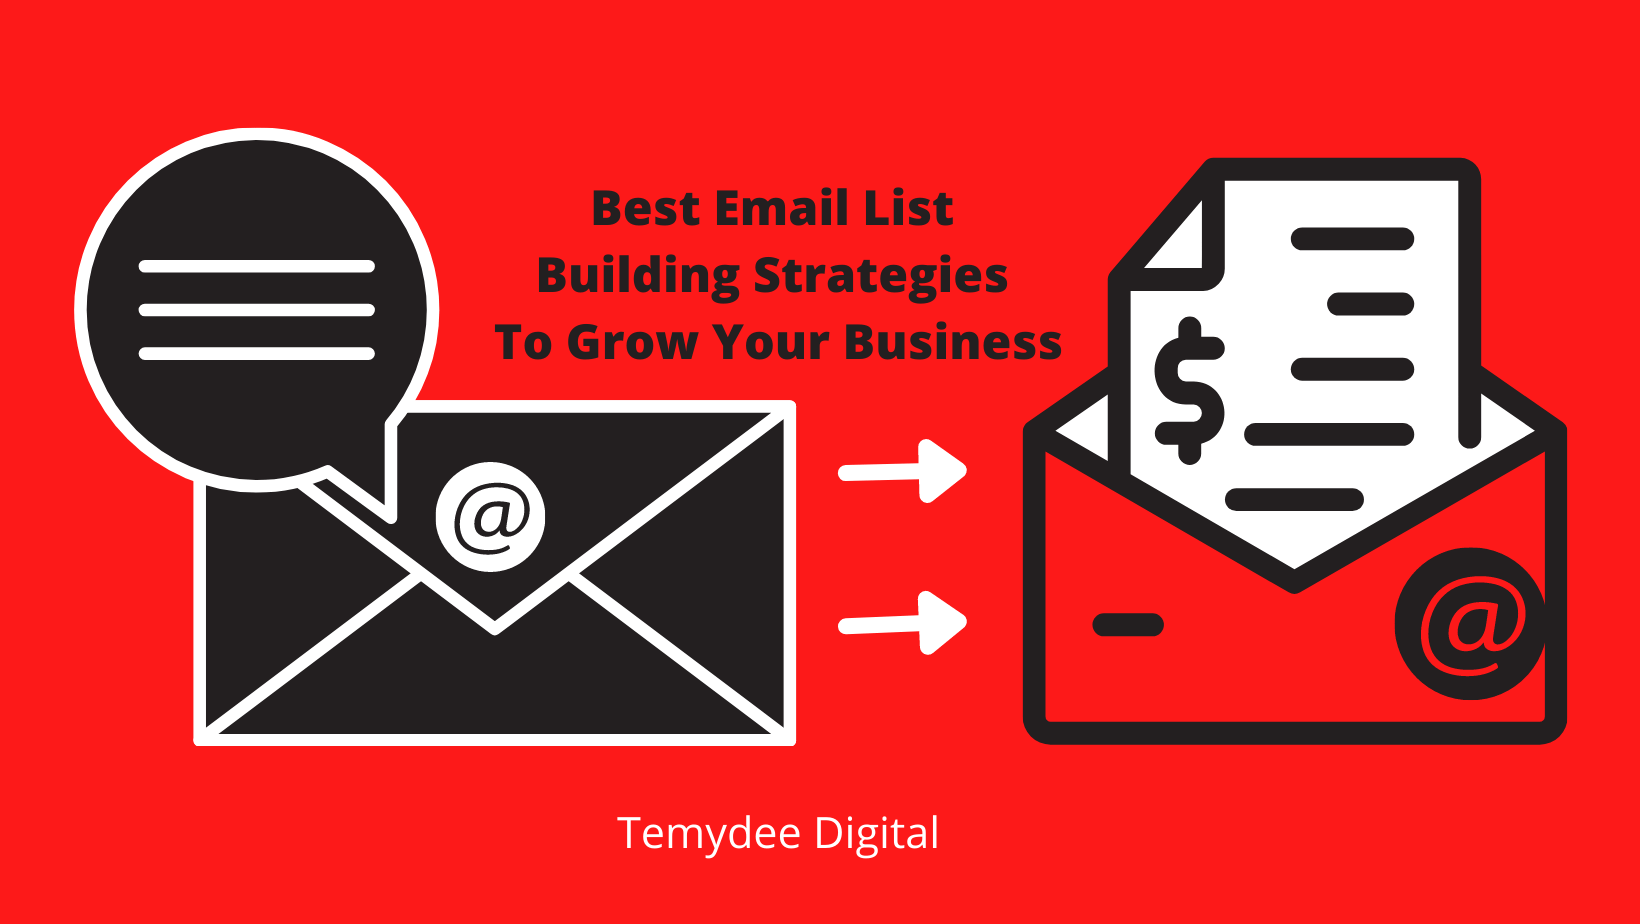 Best Email List Building Strategies To Grow Your Business